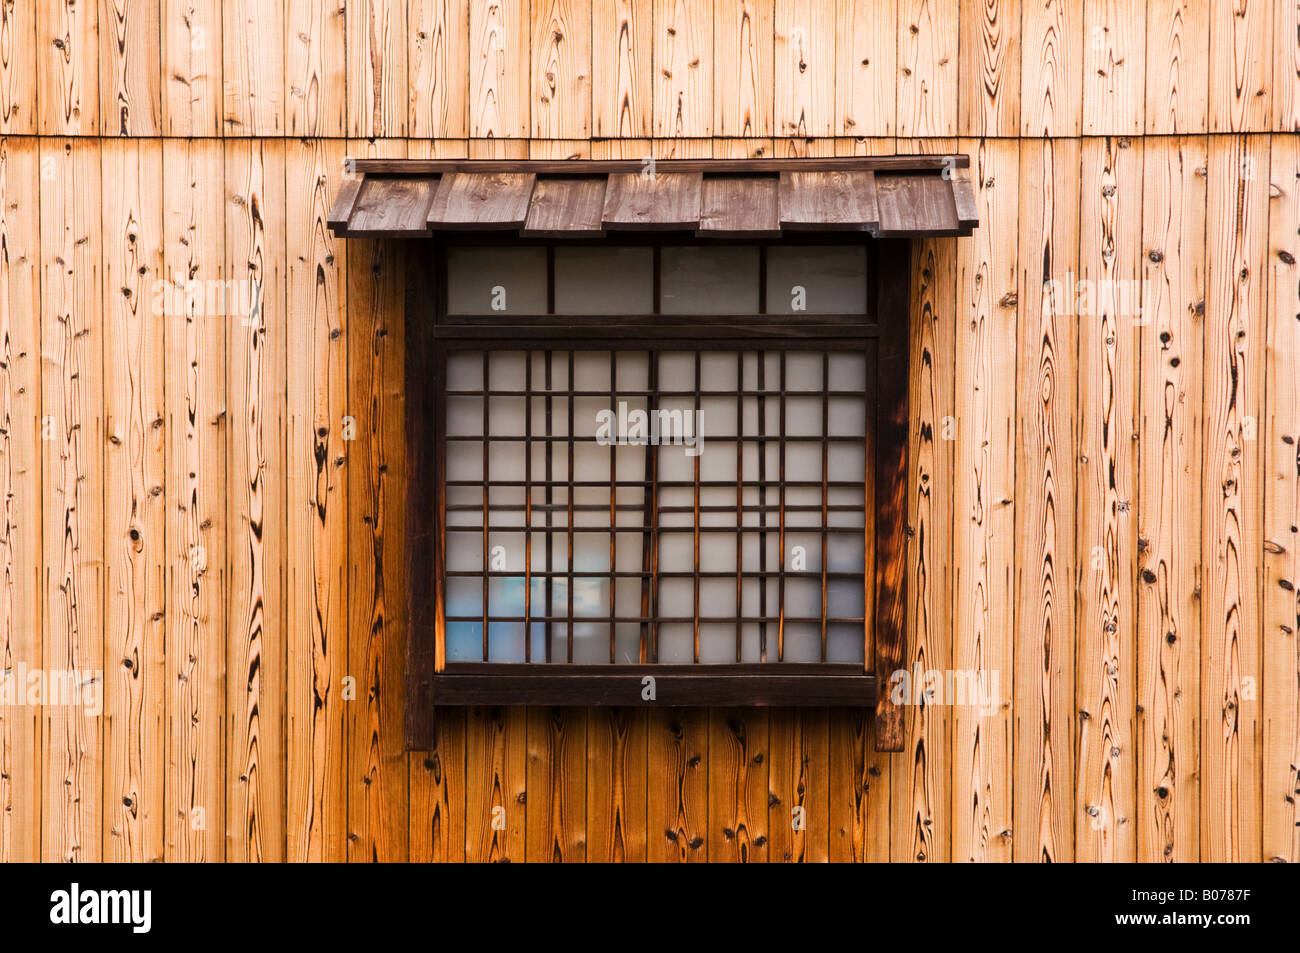 Traditional Japanese Lattice Windows And Architecture In